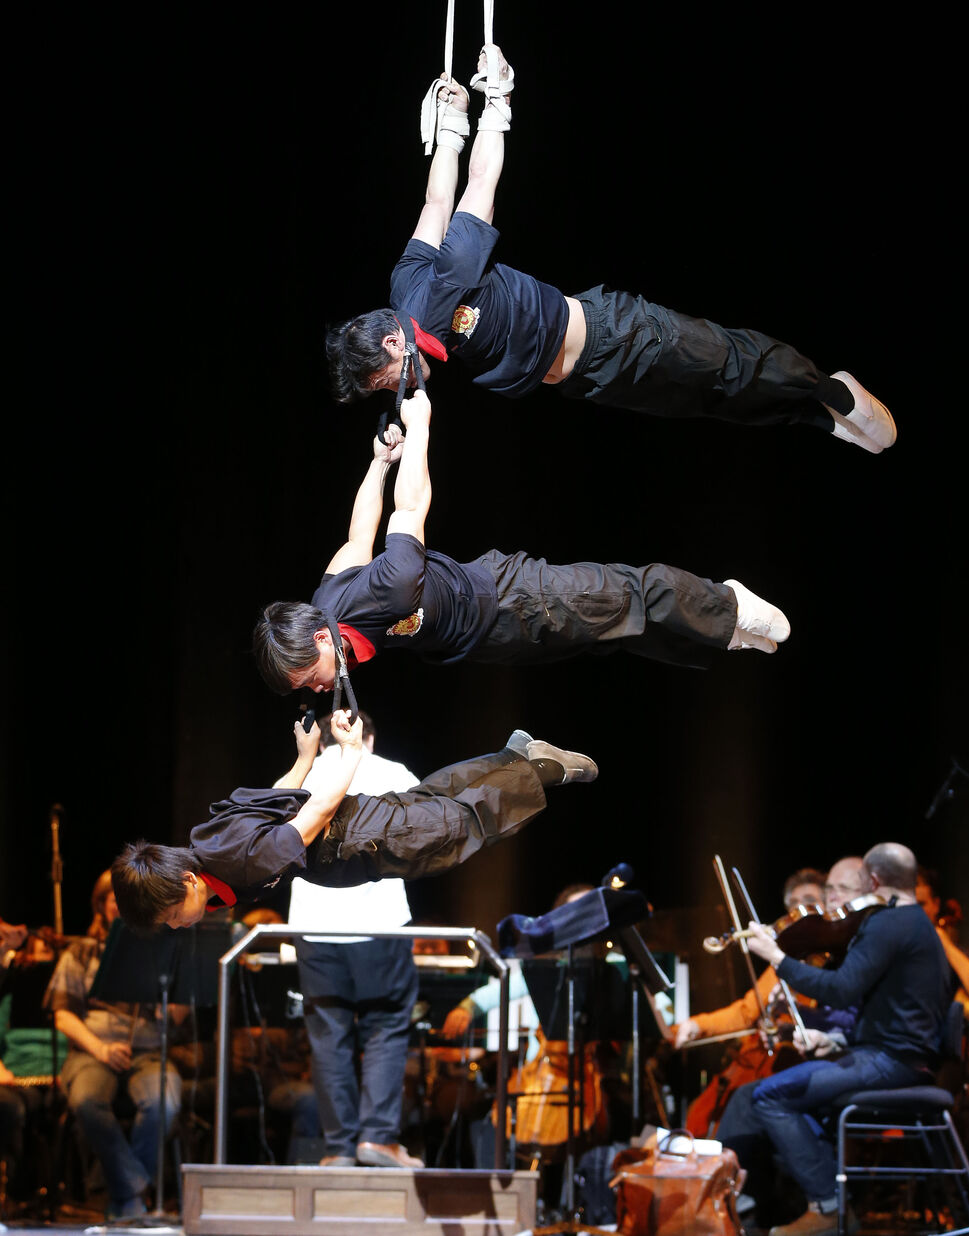 The Peking Acrobats balance in mid-air to the Winnipeg Symphony Orchestra's score before the first of three performances in Winnipeg this weekend. (KEN GIGLIOTTI / WINNIPEG FREE PRESS)